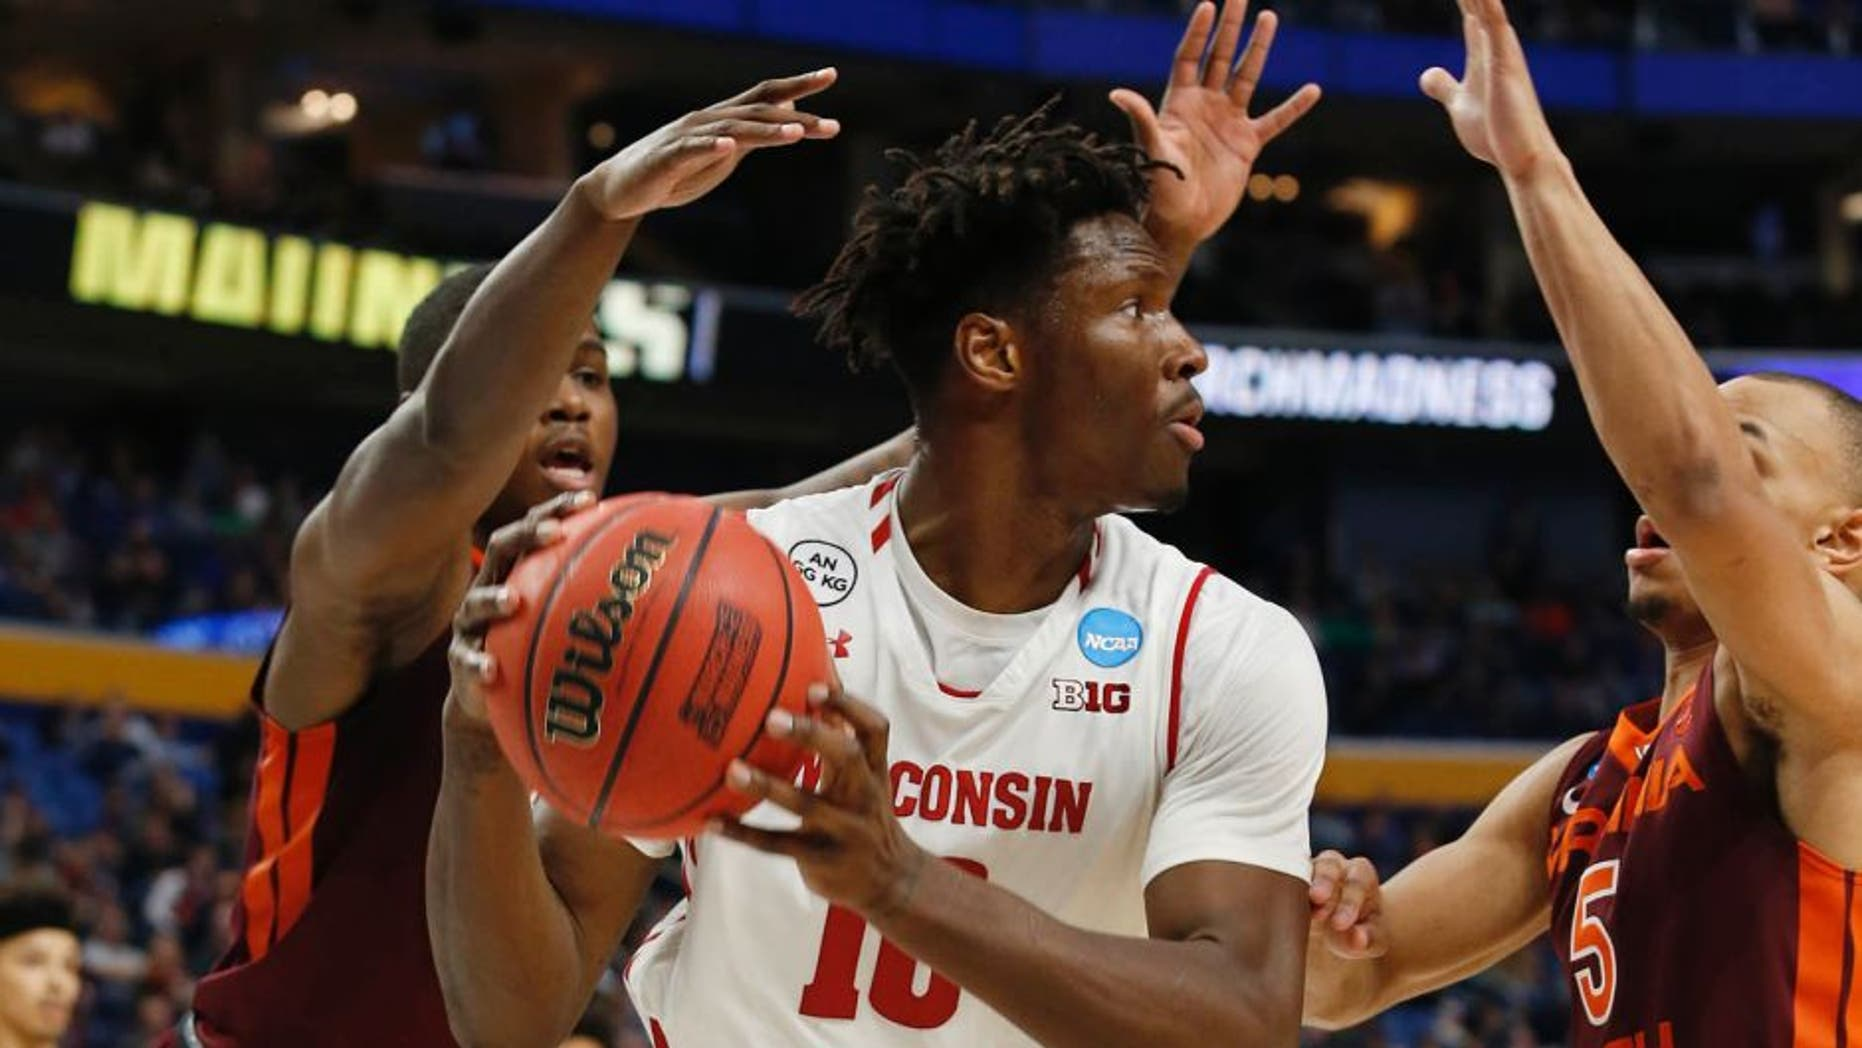 Mar 16, 2017; Buffalo, NY, USA; Wisconsin Badgers forward Nigel Hayes (10) is pressured by Virginia Tech Hokies guard Ty Outlaw (42) and guard Justin Robinson (5) in the second half during the first round of the NCAA Tournament at KeyBank Center. Mandatory Credit: Timothy T. Ludwig-USA TODAY Sports